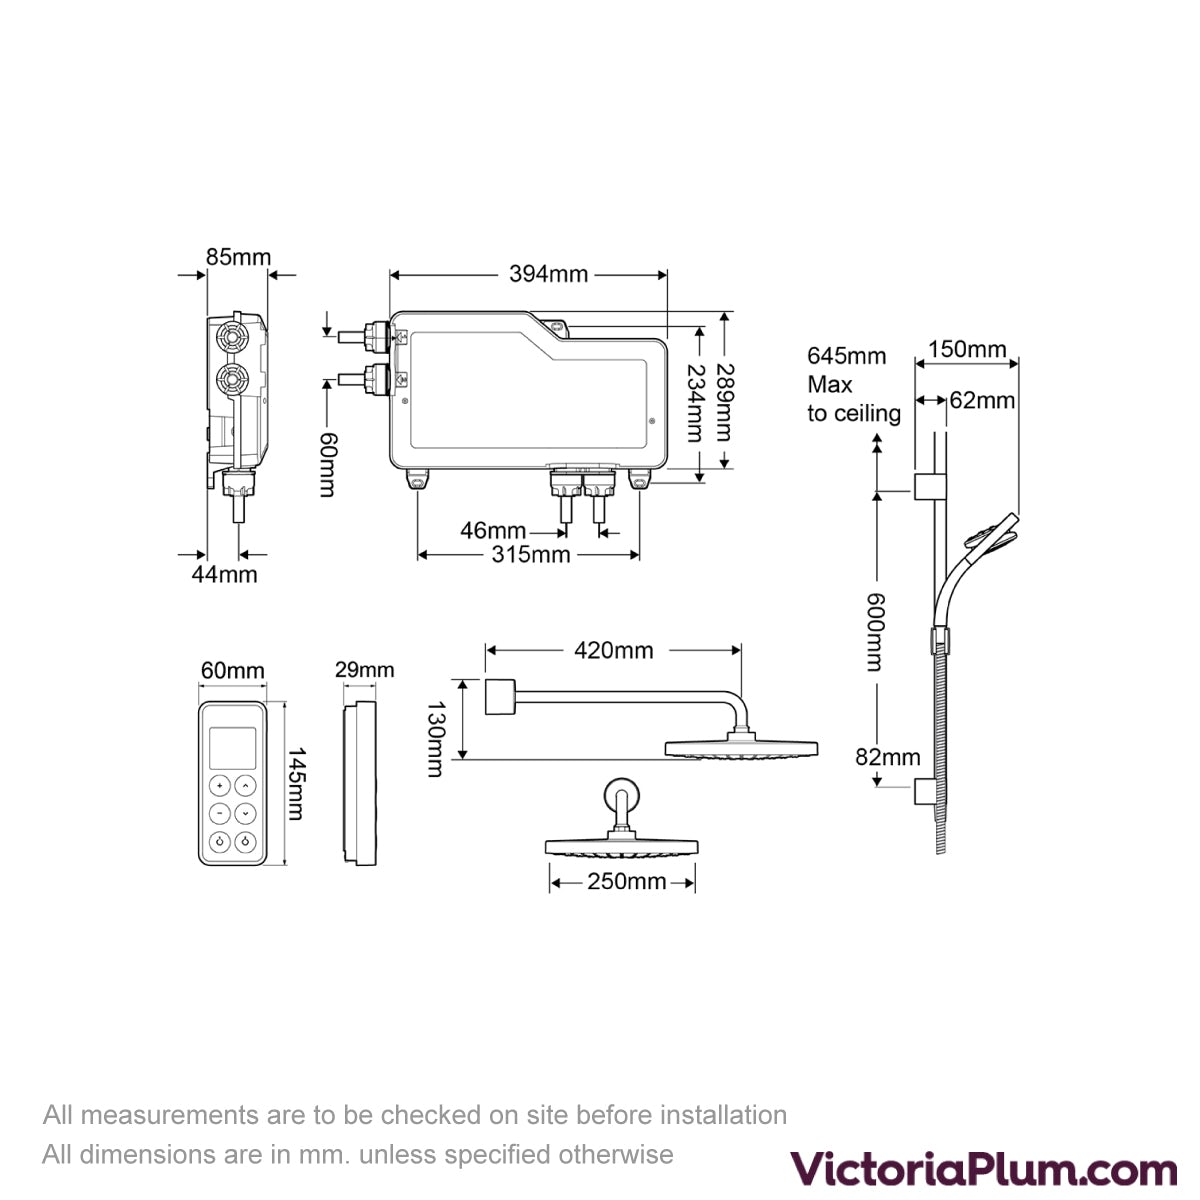 Dimensions for Mira Vision dual rear fed digital shower pumped